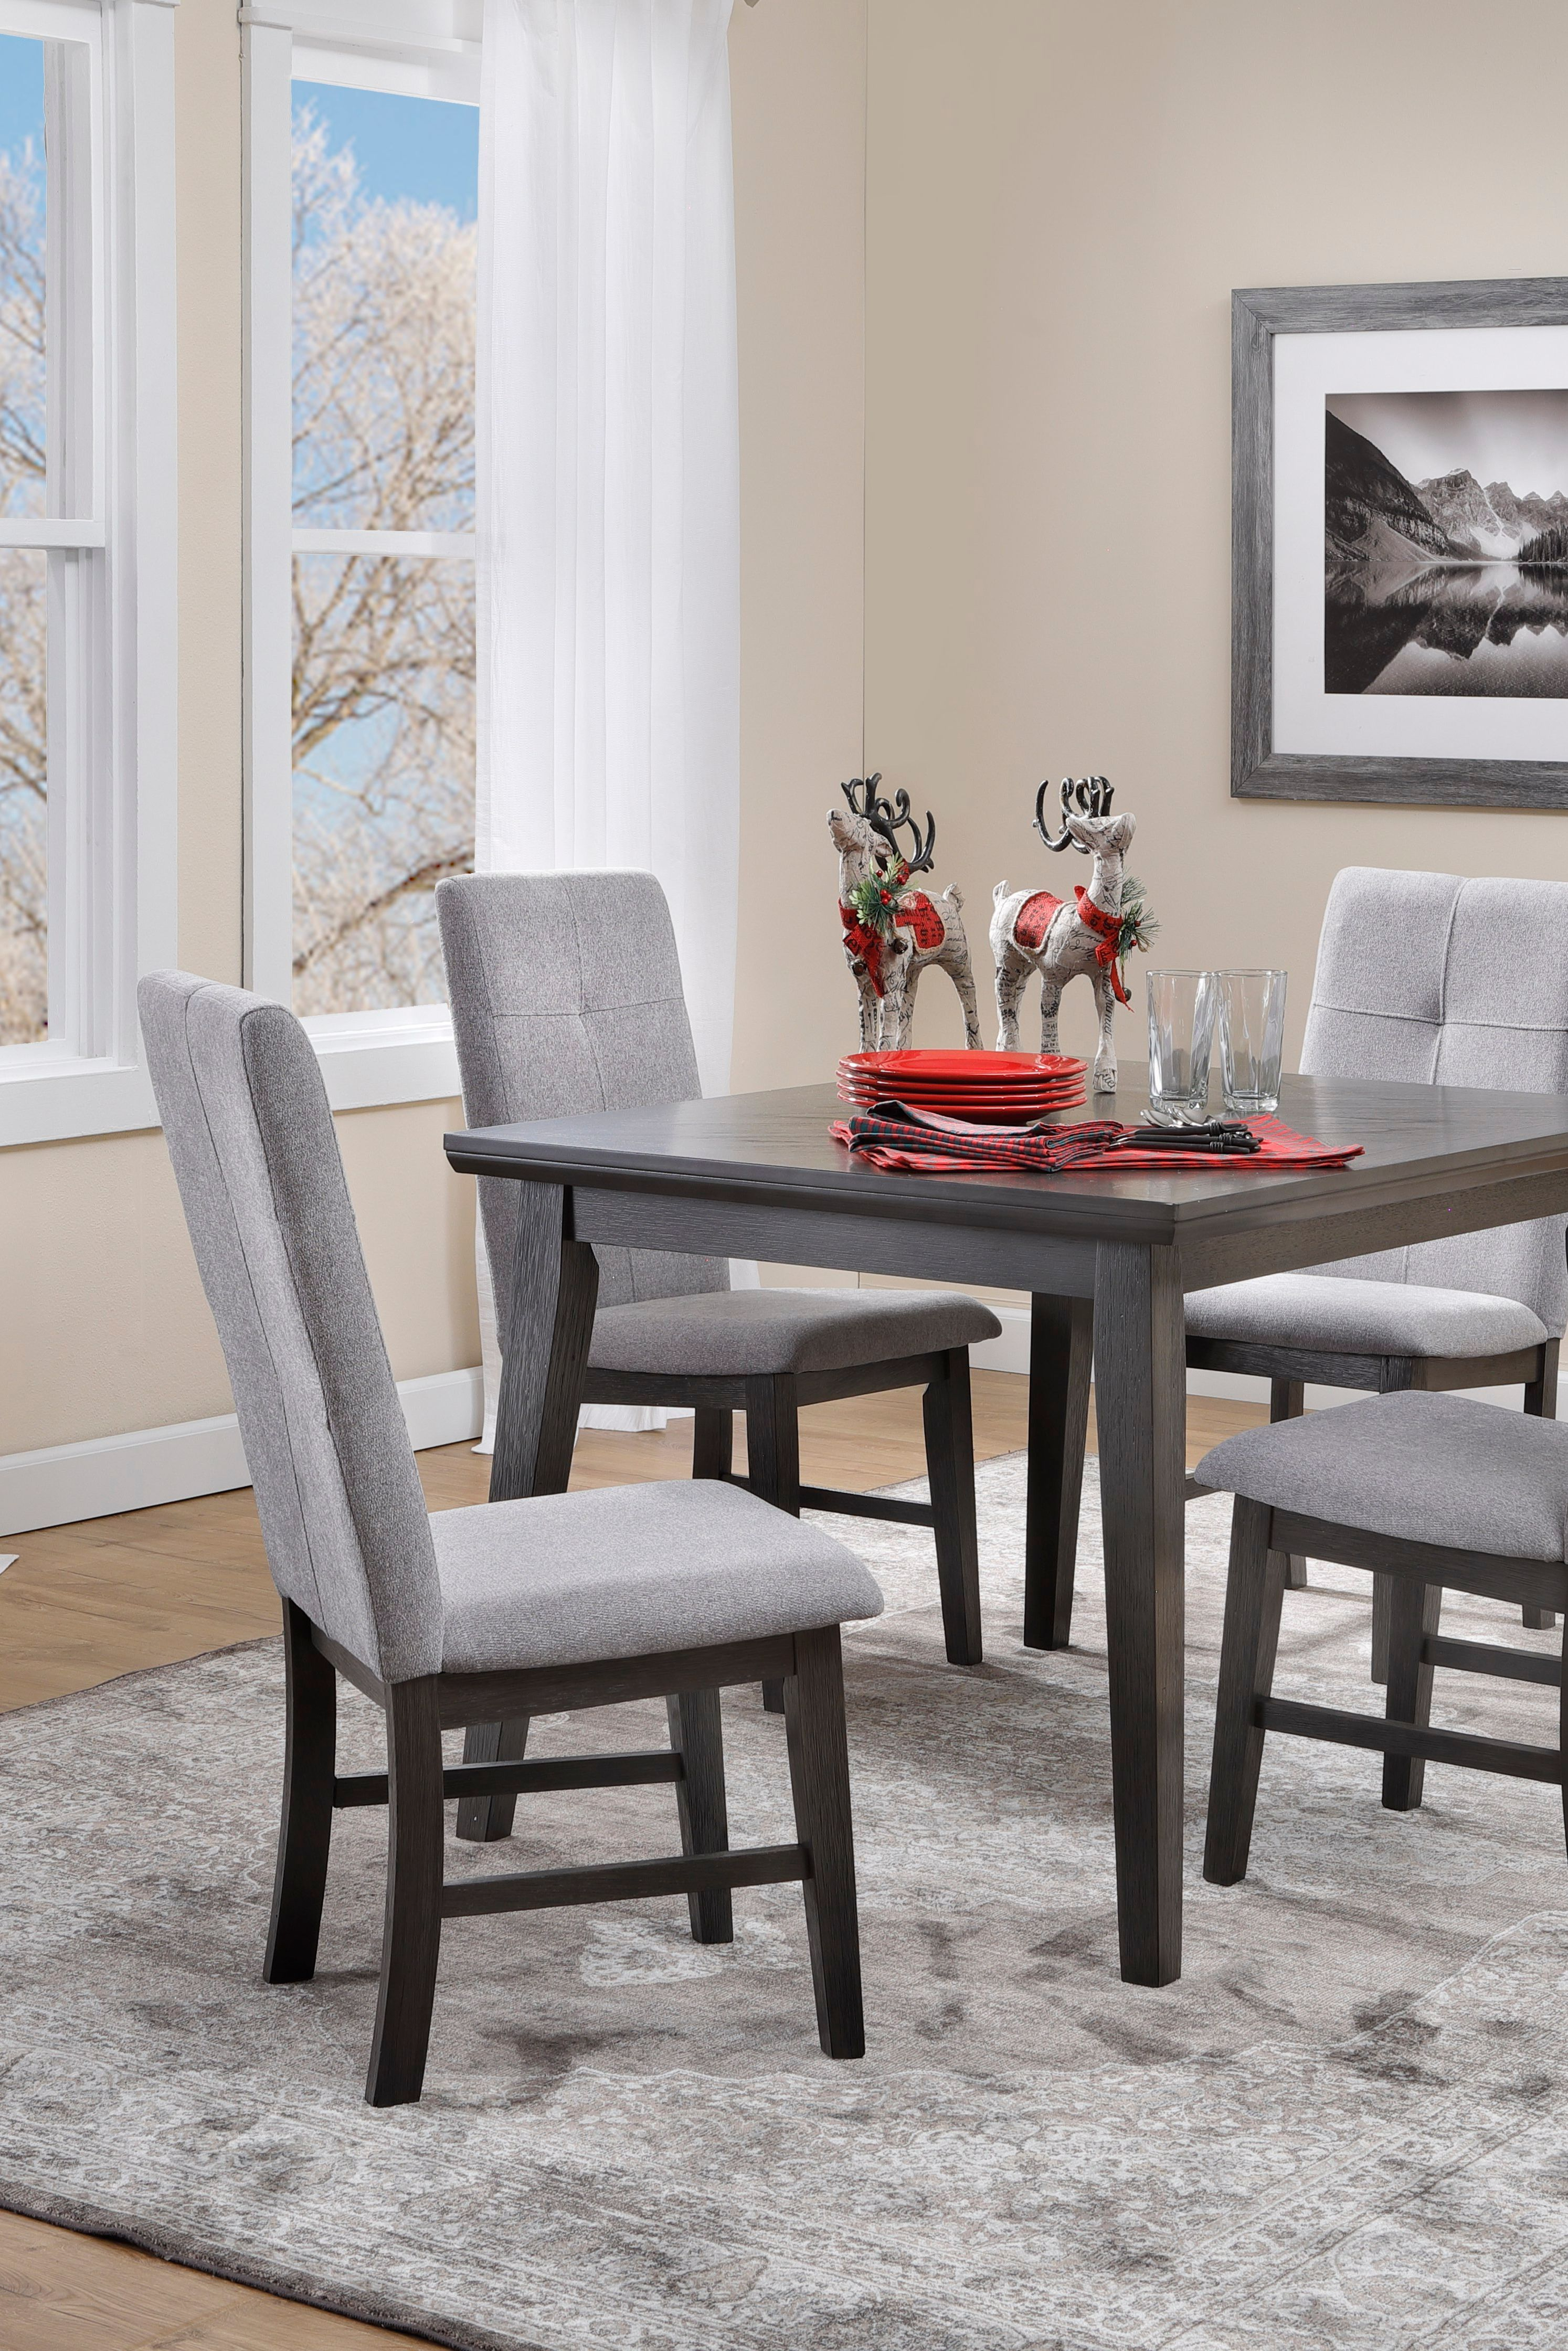 Get the Collegiate 5 piece Dining Set for 299 during the